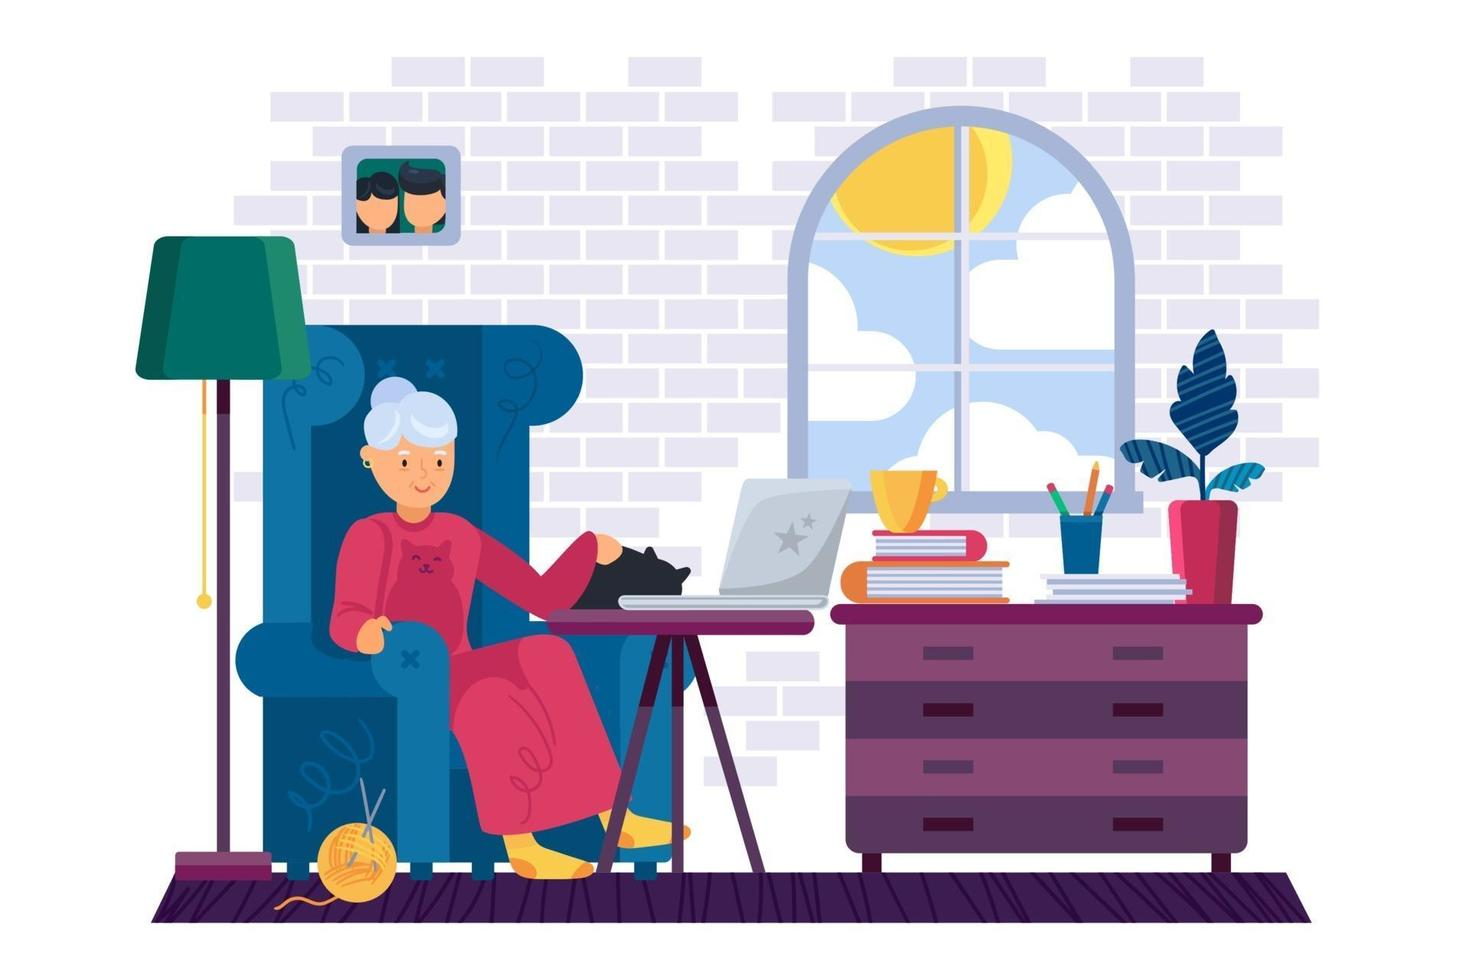 Grandma working on laptop device at home vector